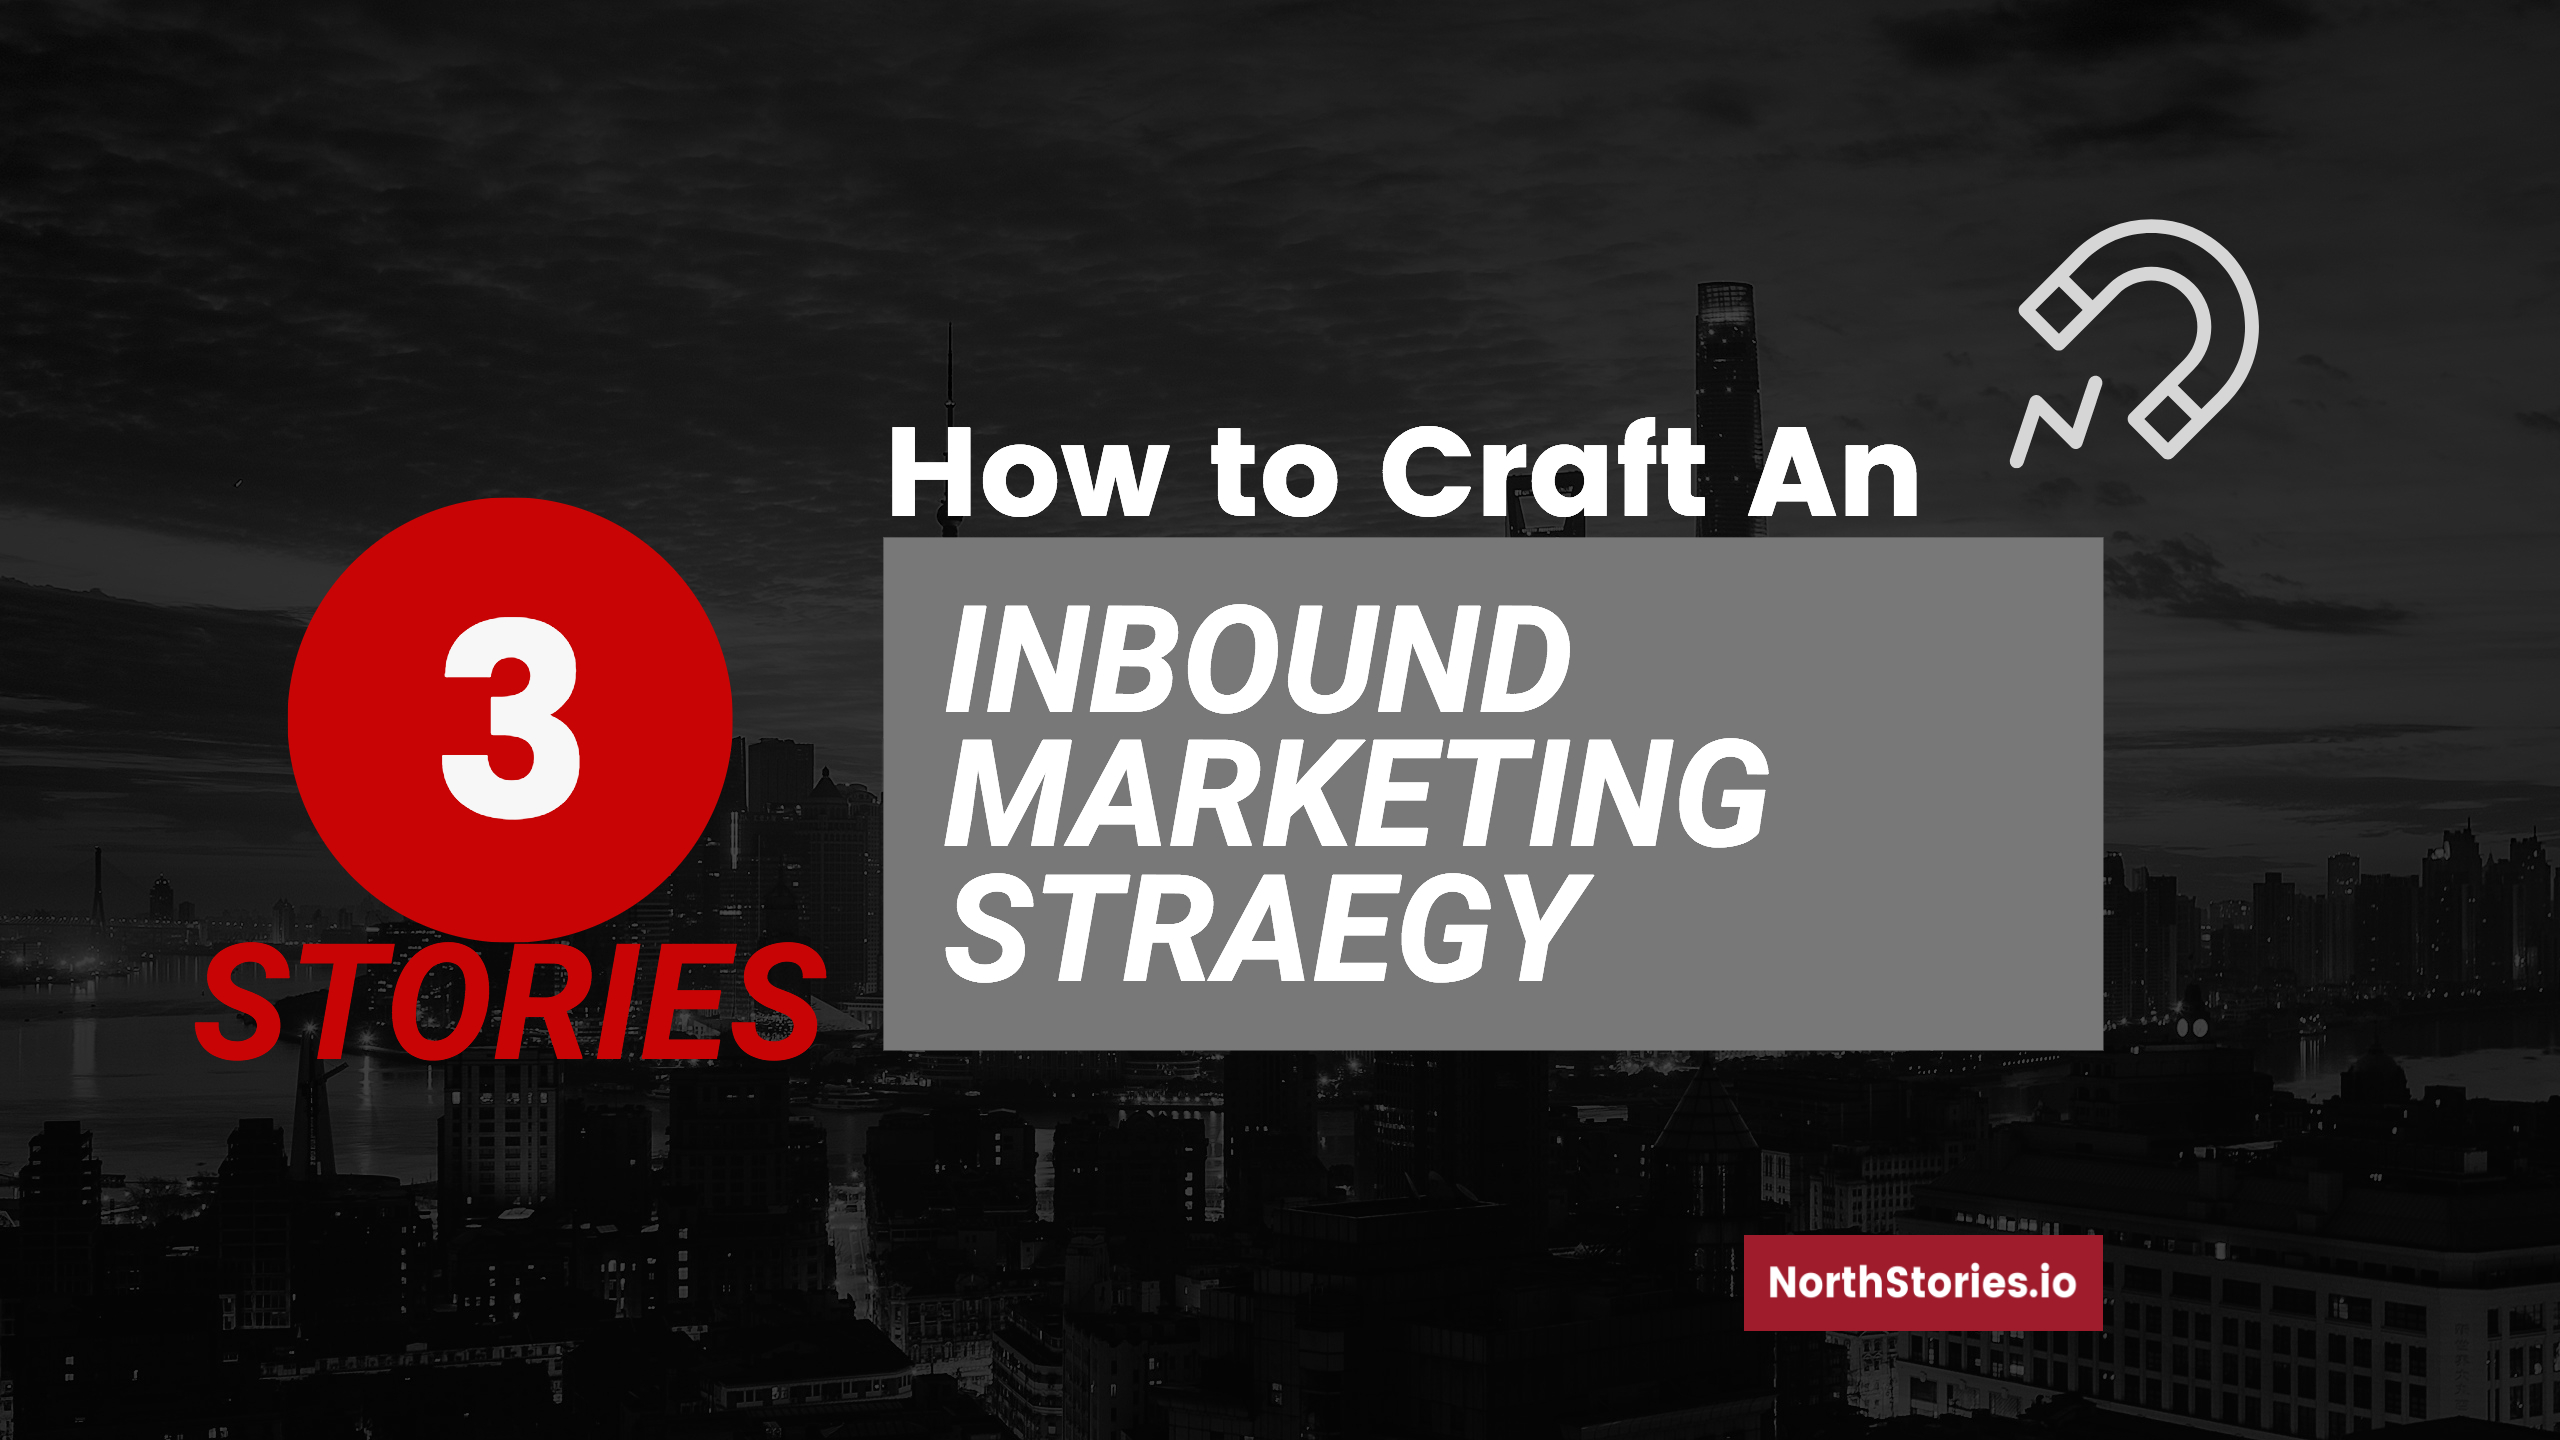 3 Stories- How to Craft an Inbound Marketing Campaign